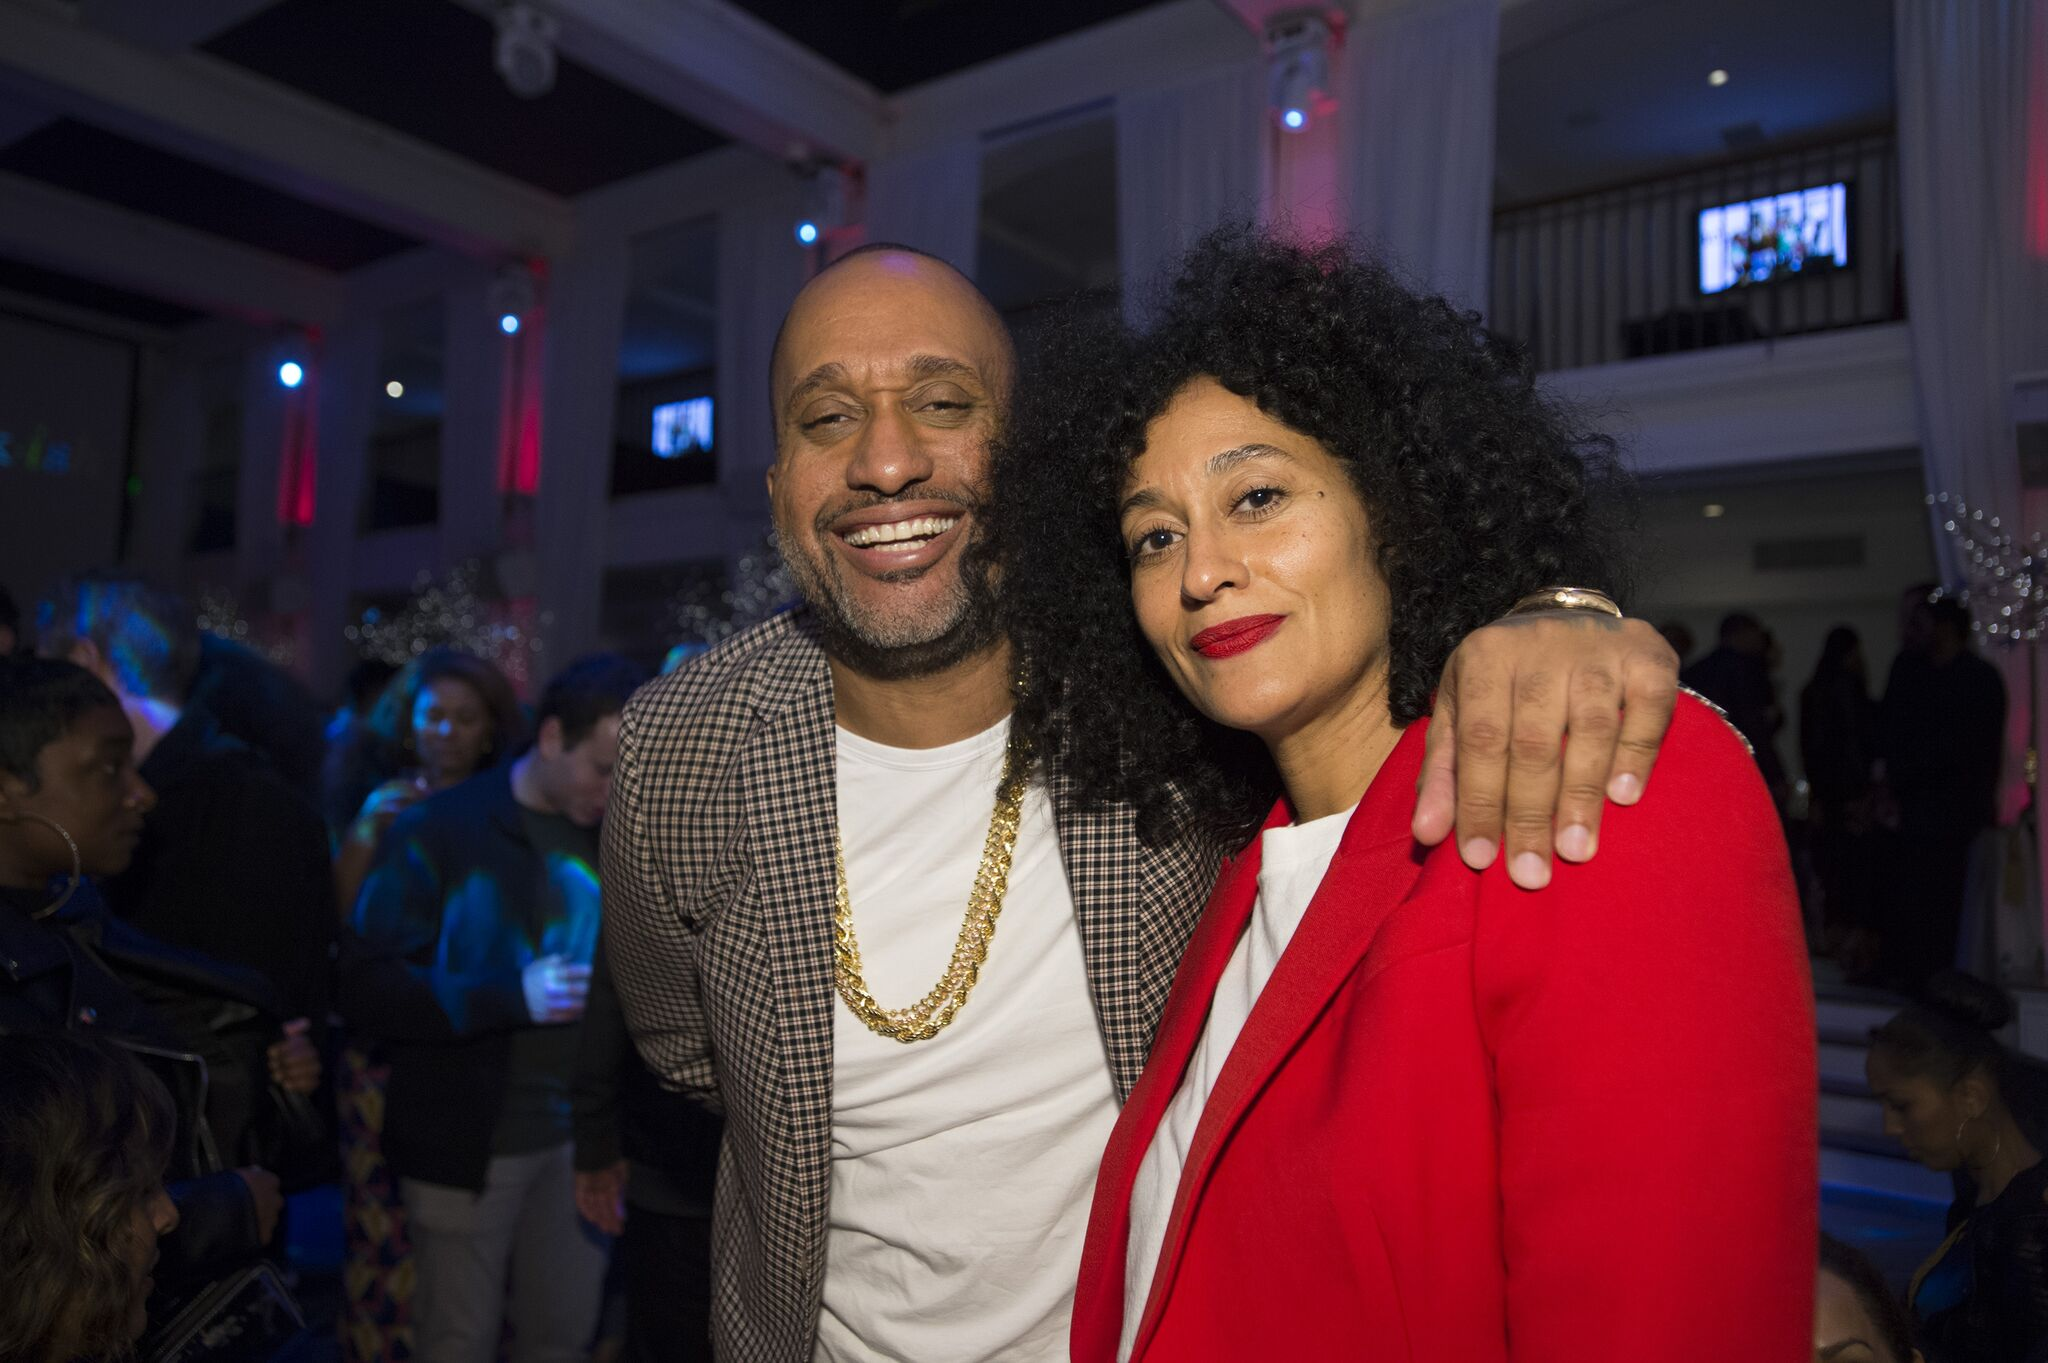 """Kenya Barris and Tracee Ellis Ross at the Season 4 wrap party of """"Black-ish""""  in Los Angeles. 